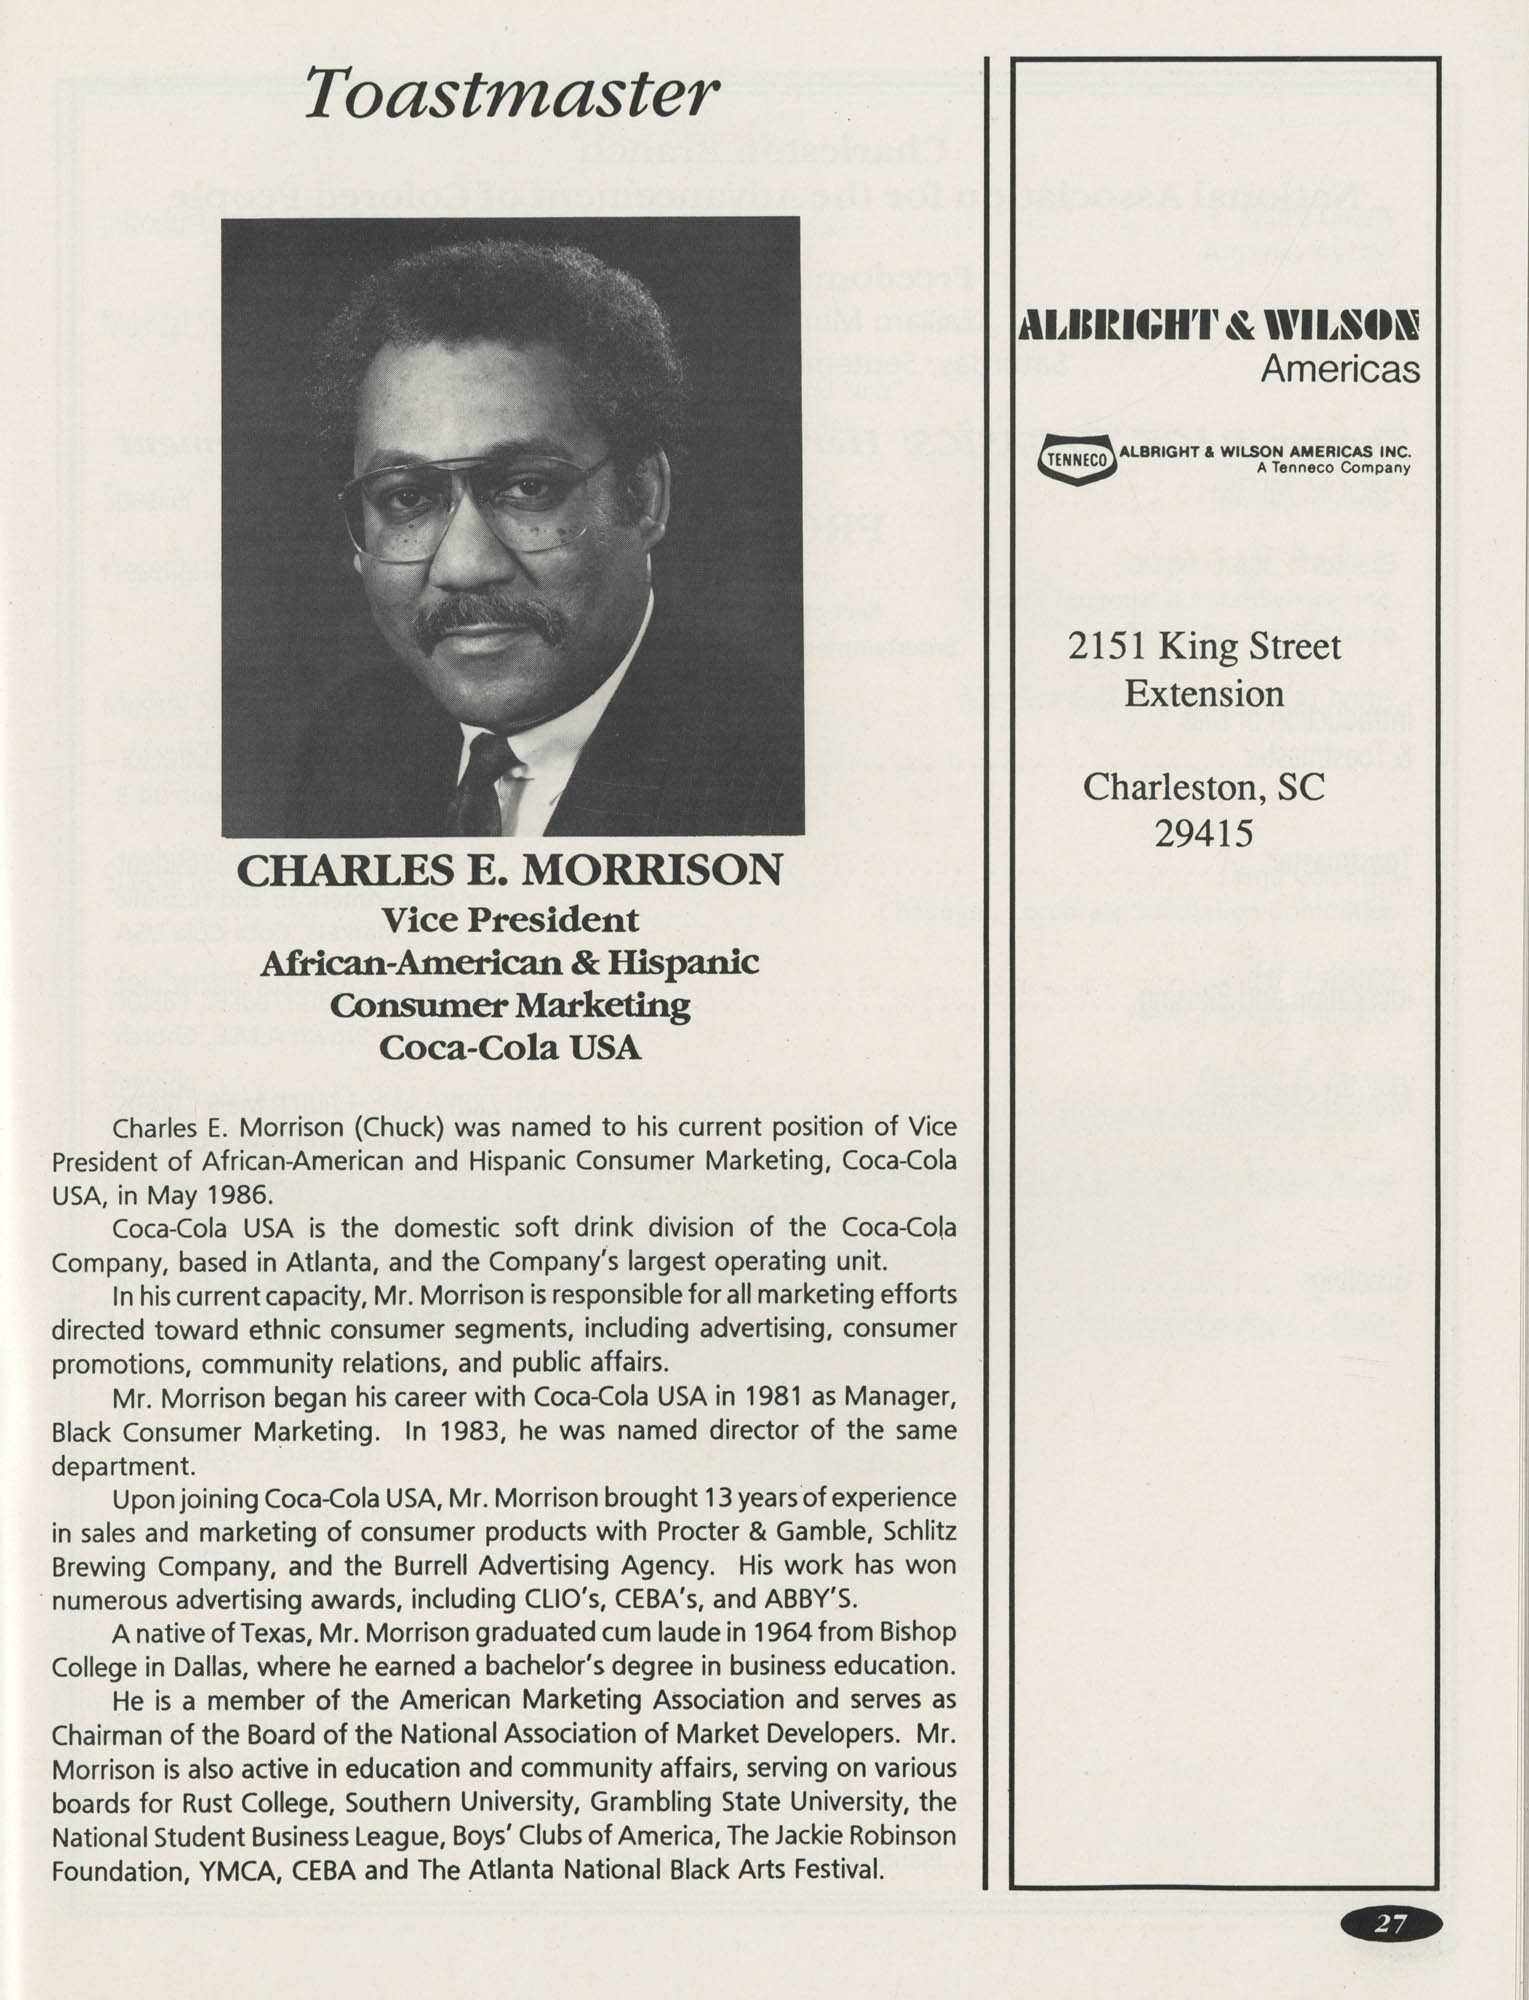 1991 Freedom Fund Magazine, Charleston Branch of the NAACP, Page 27